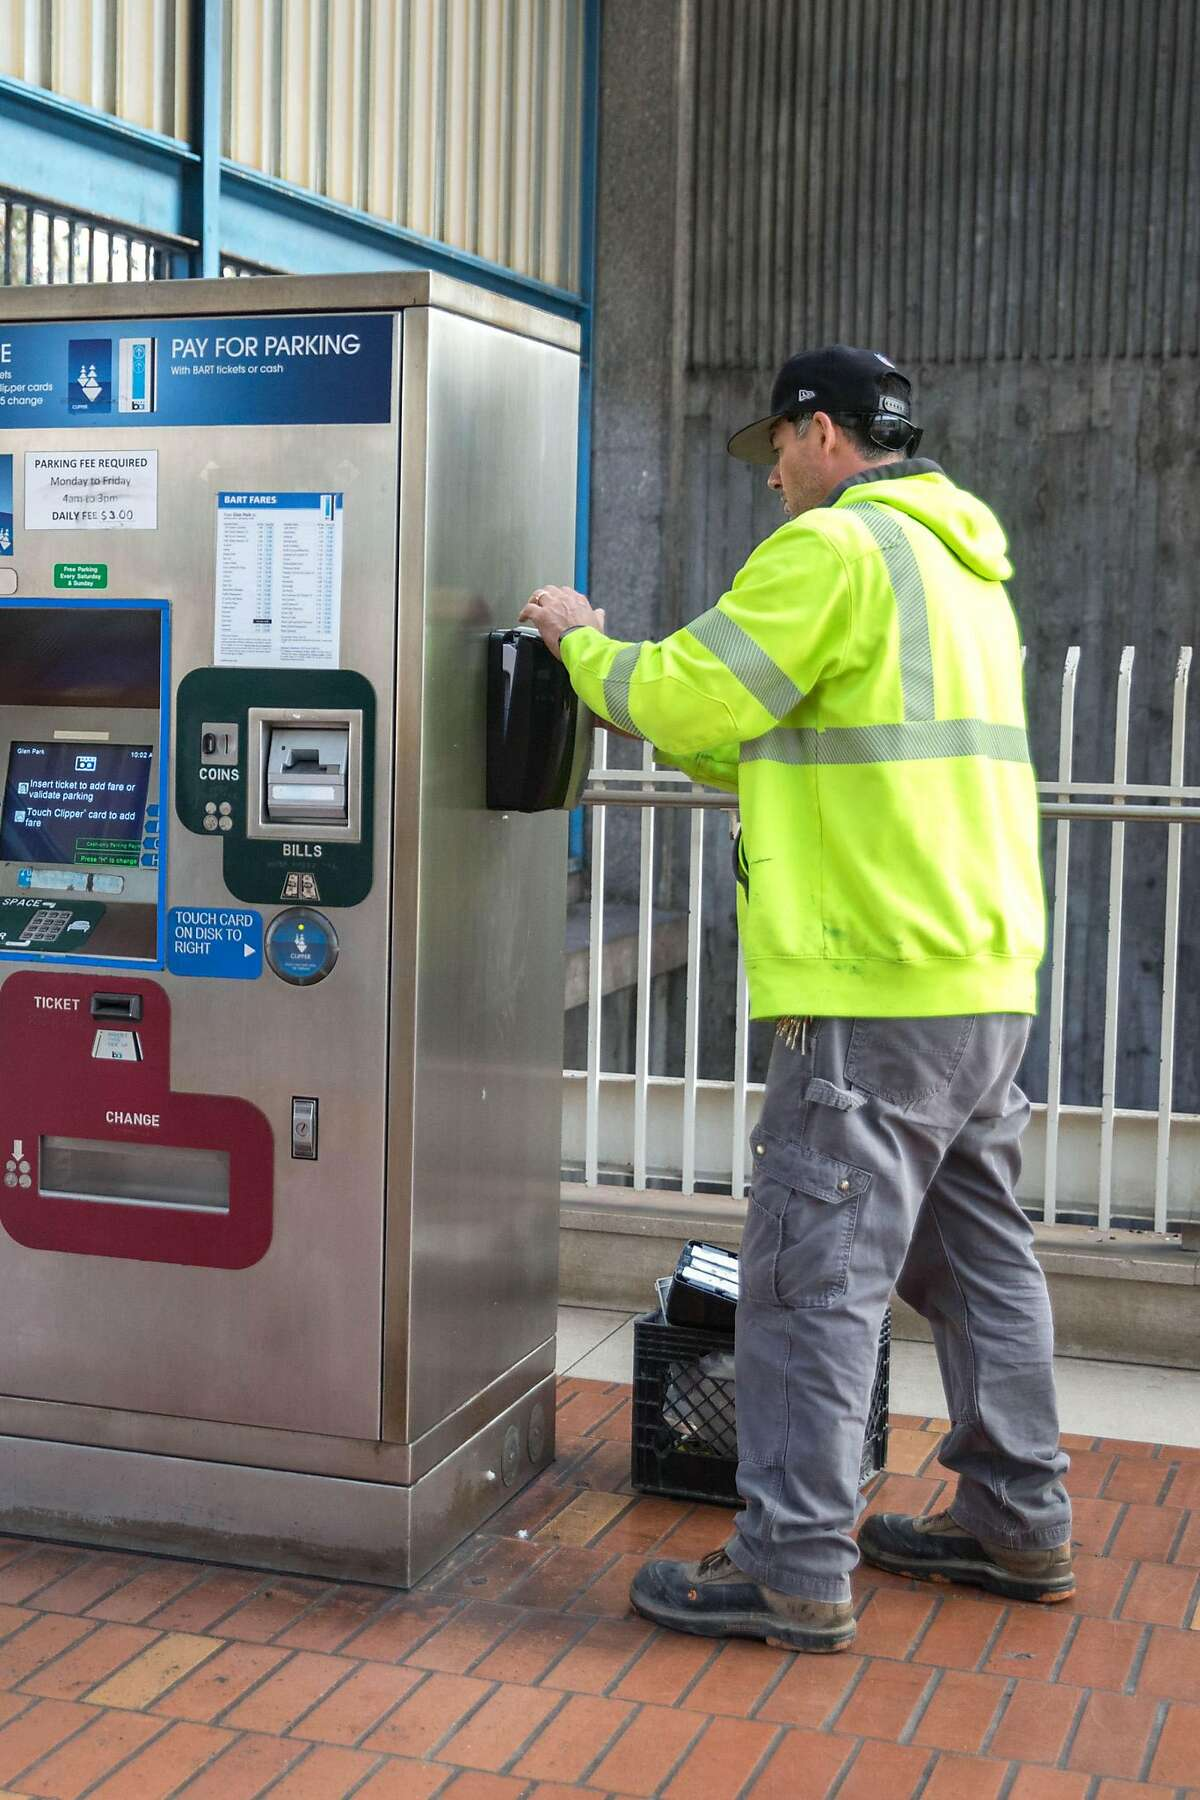 Lee Martin, plumber, installs hand sanitizer dispenser inside the BART facilities at Glen Park station. BART is losing up to $600,000 a day from dwindling ridership during the coronavirus outbreak, a crisis for an agency that relies on fares for 60 % of its operating costs. In addition to the losses, the transportation agency is chipping in thousands of dollars for extra cleanings, hand sanitizer dispensaries in all 48 stations, and other protections against the virus. On Friday, March 13, 2020. San Francisco, Calif.